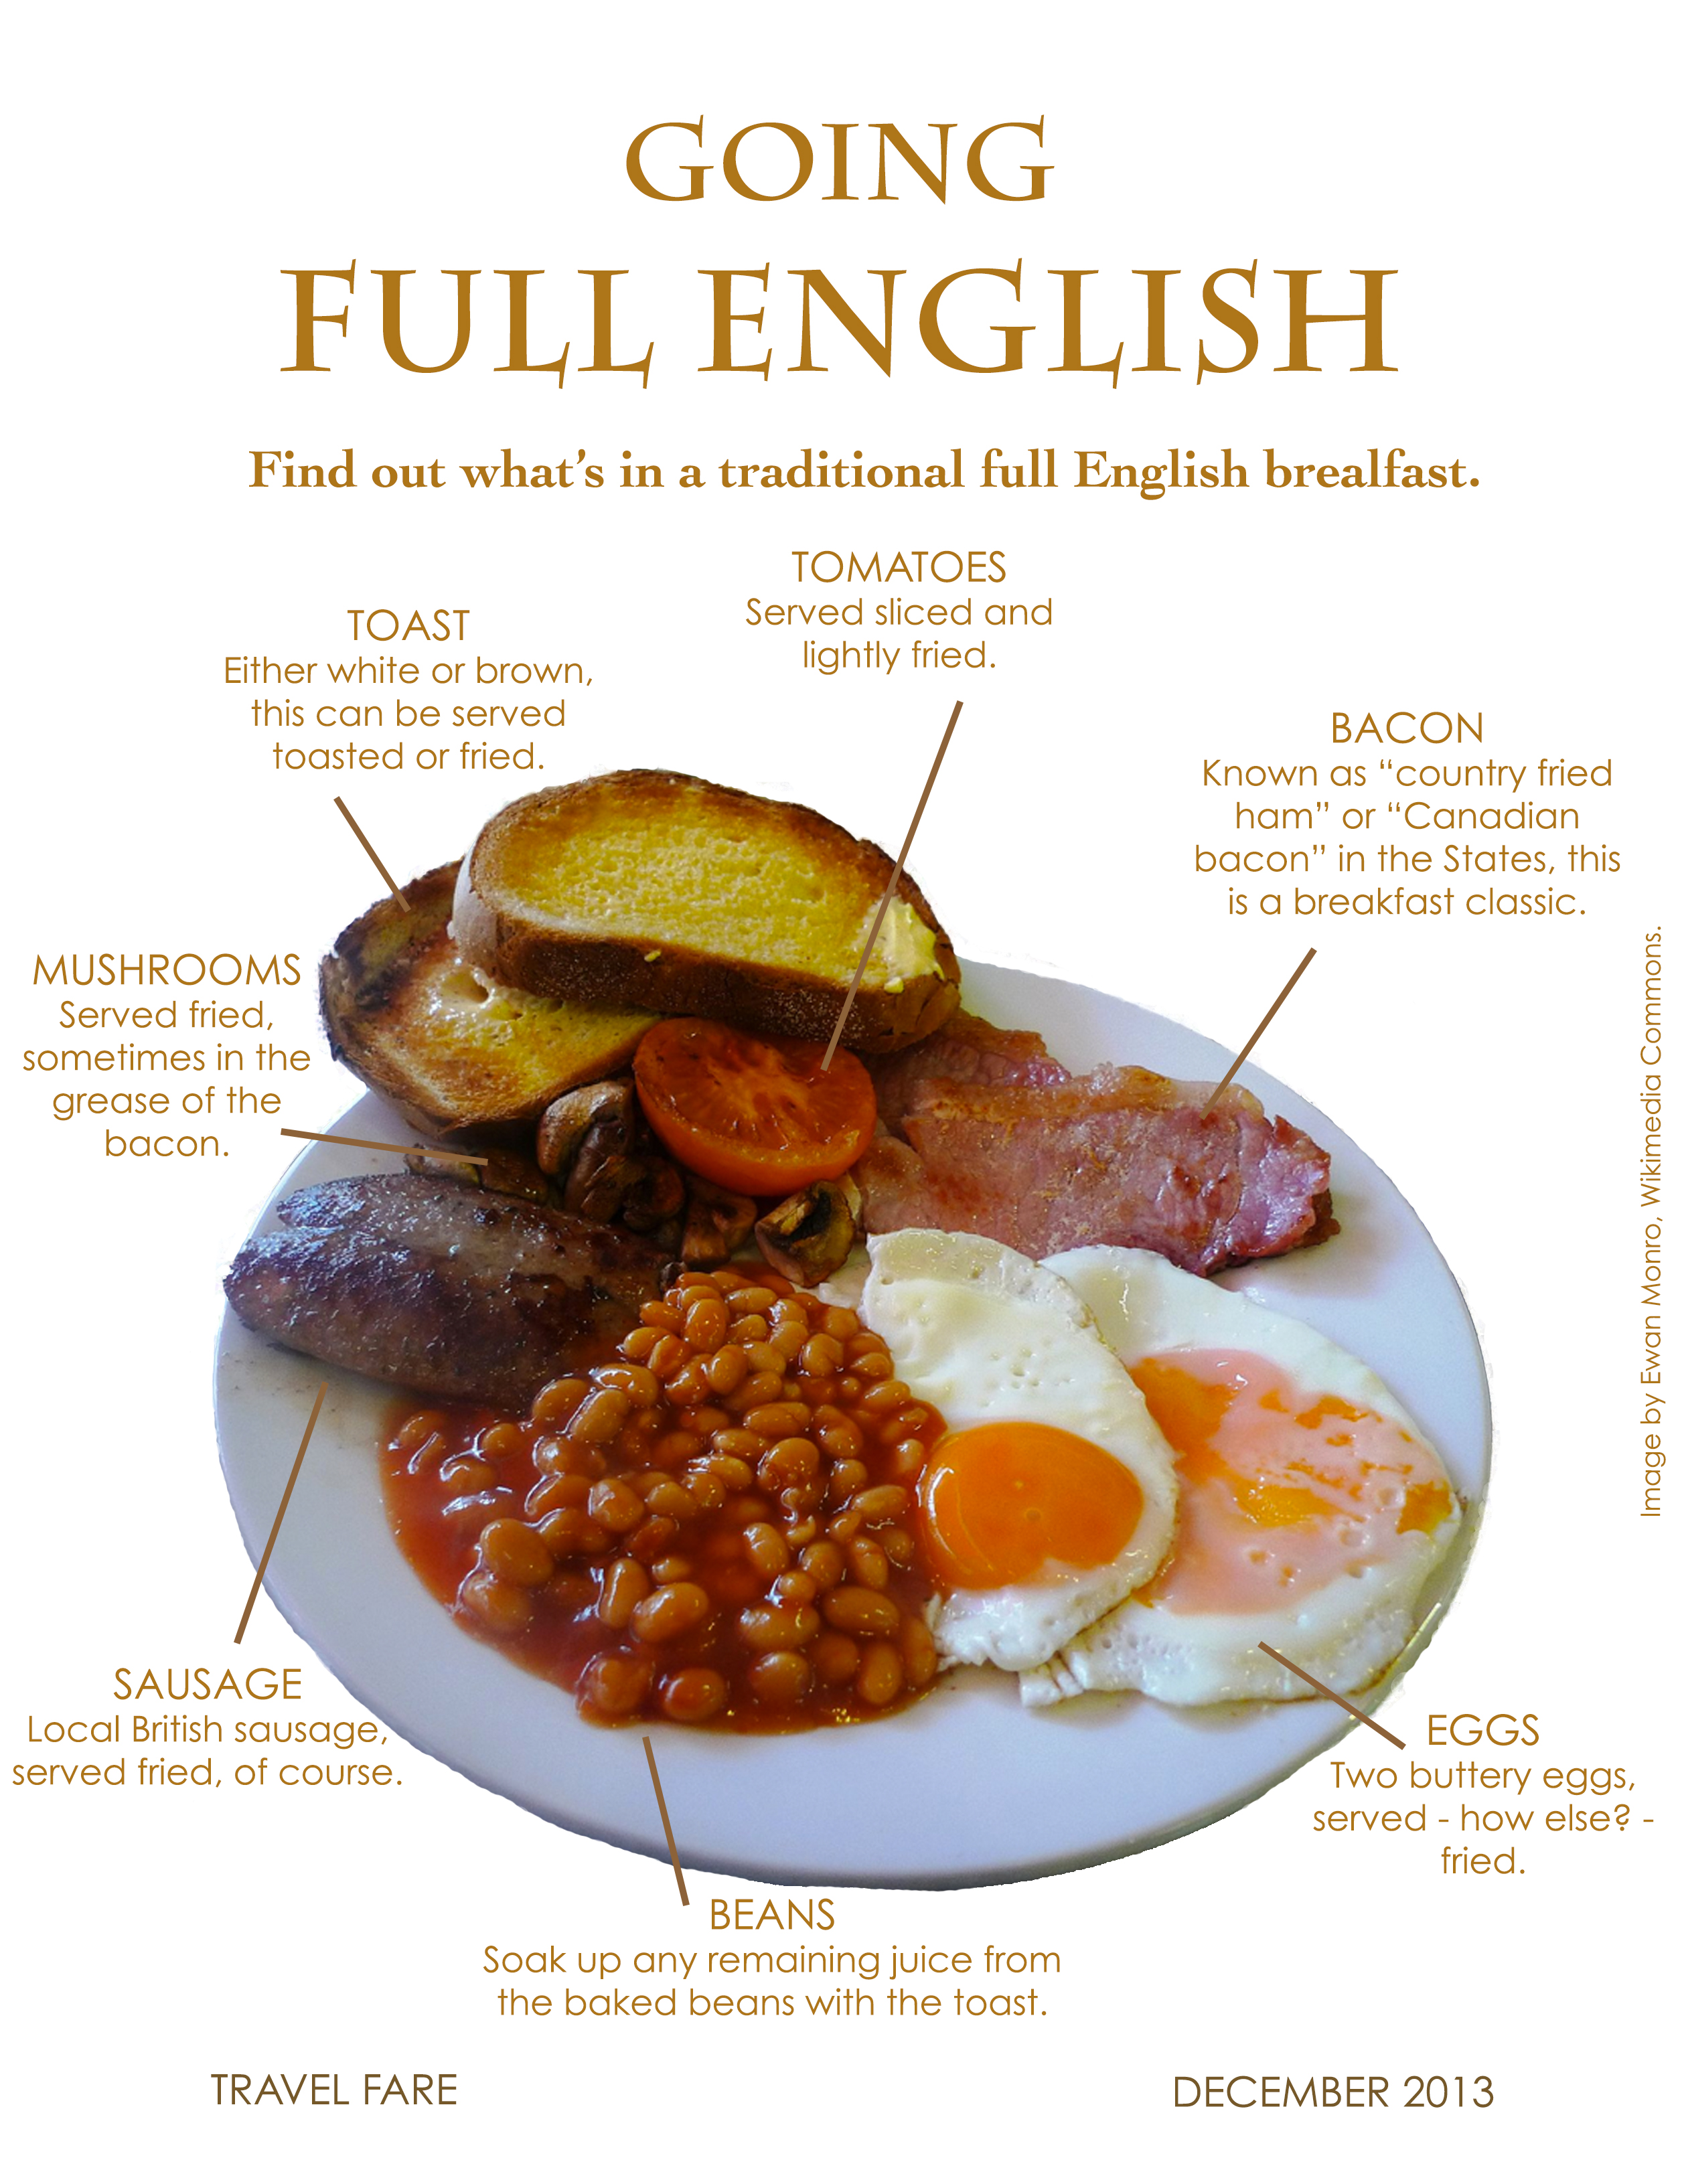 Sunday brunch: Full English Breakfast | Travel Fare